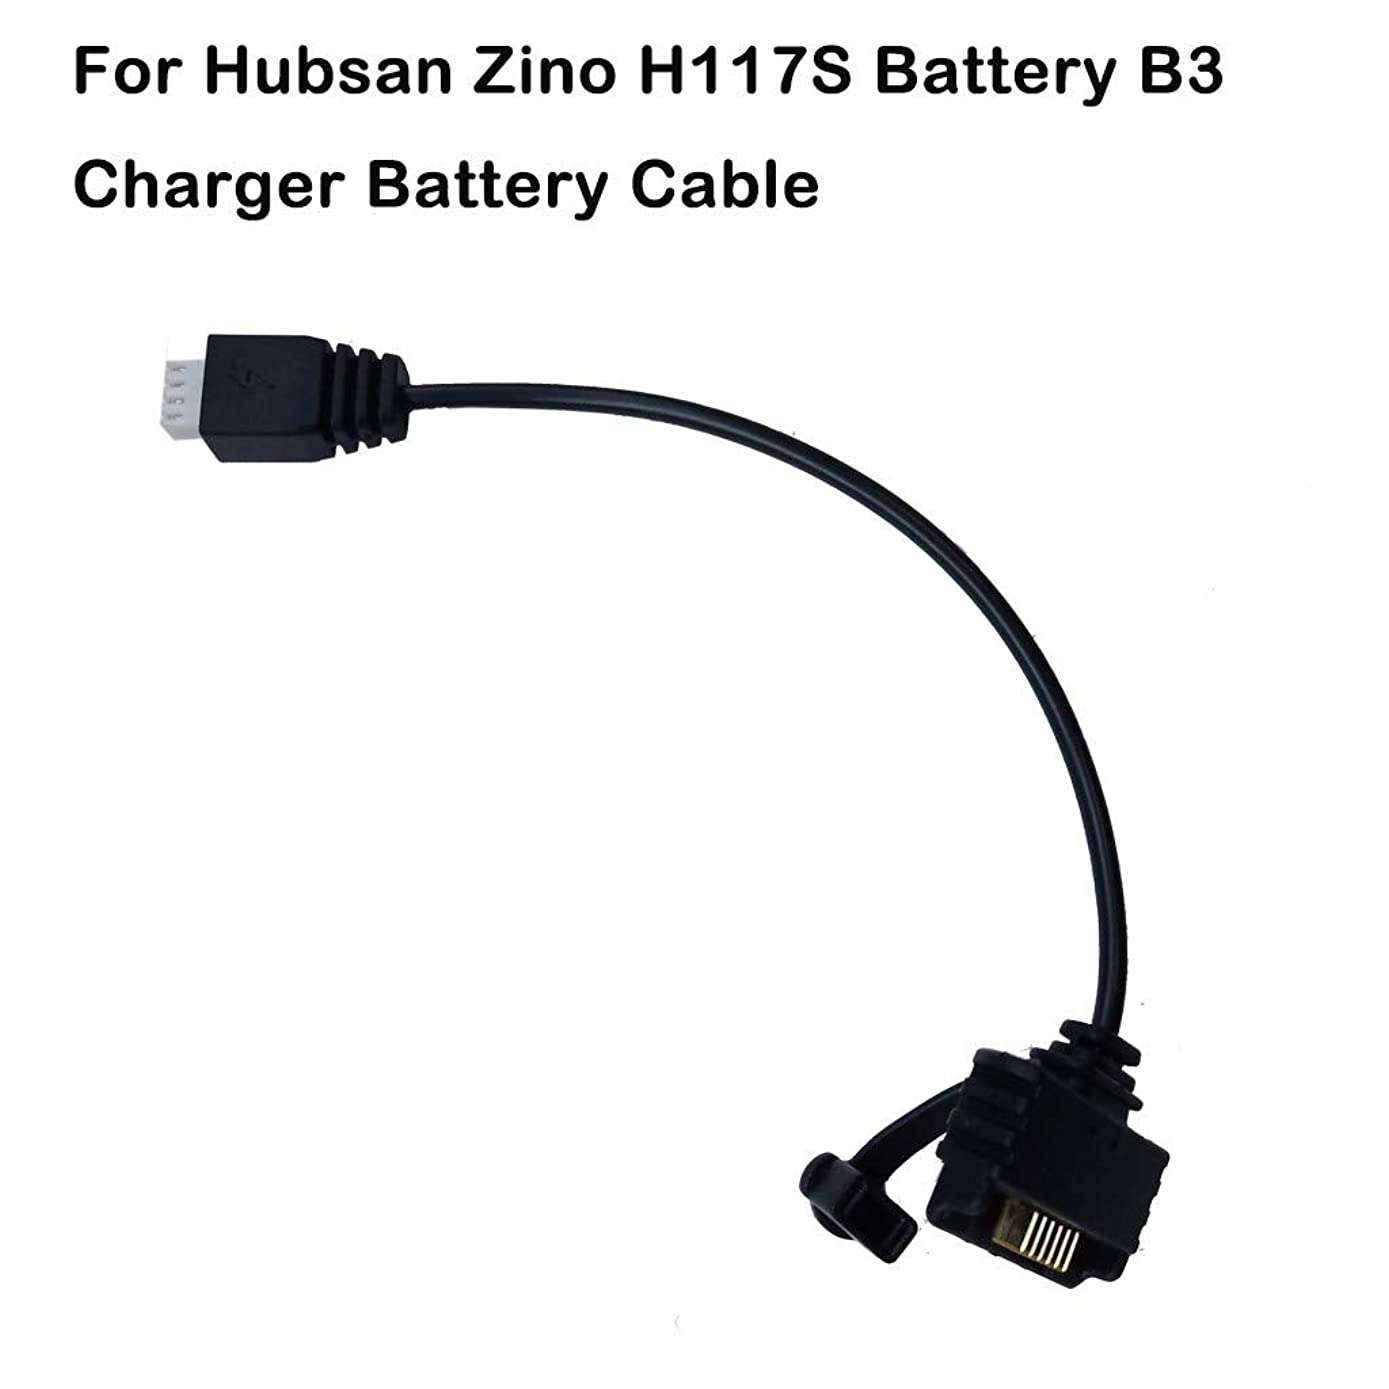 Volity Livoty Drone Charging Cable Hubsan Zino H117S RC Drone Quadcopter Spare Parts Battery Connected Cable Wire